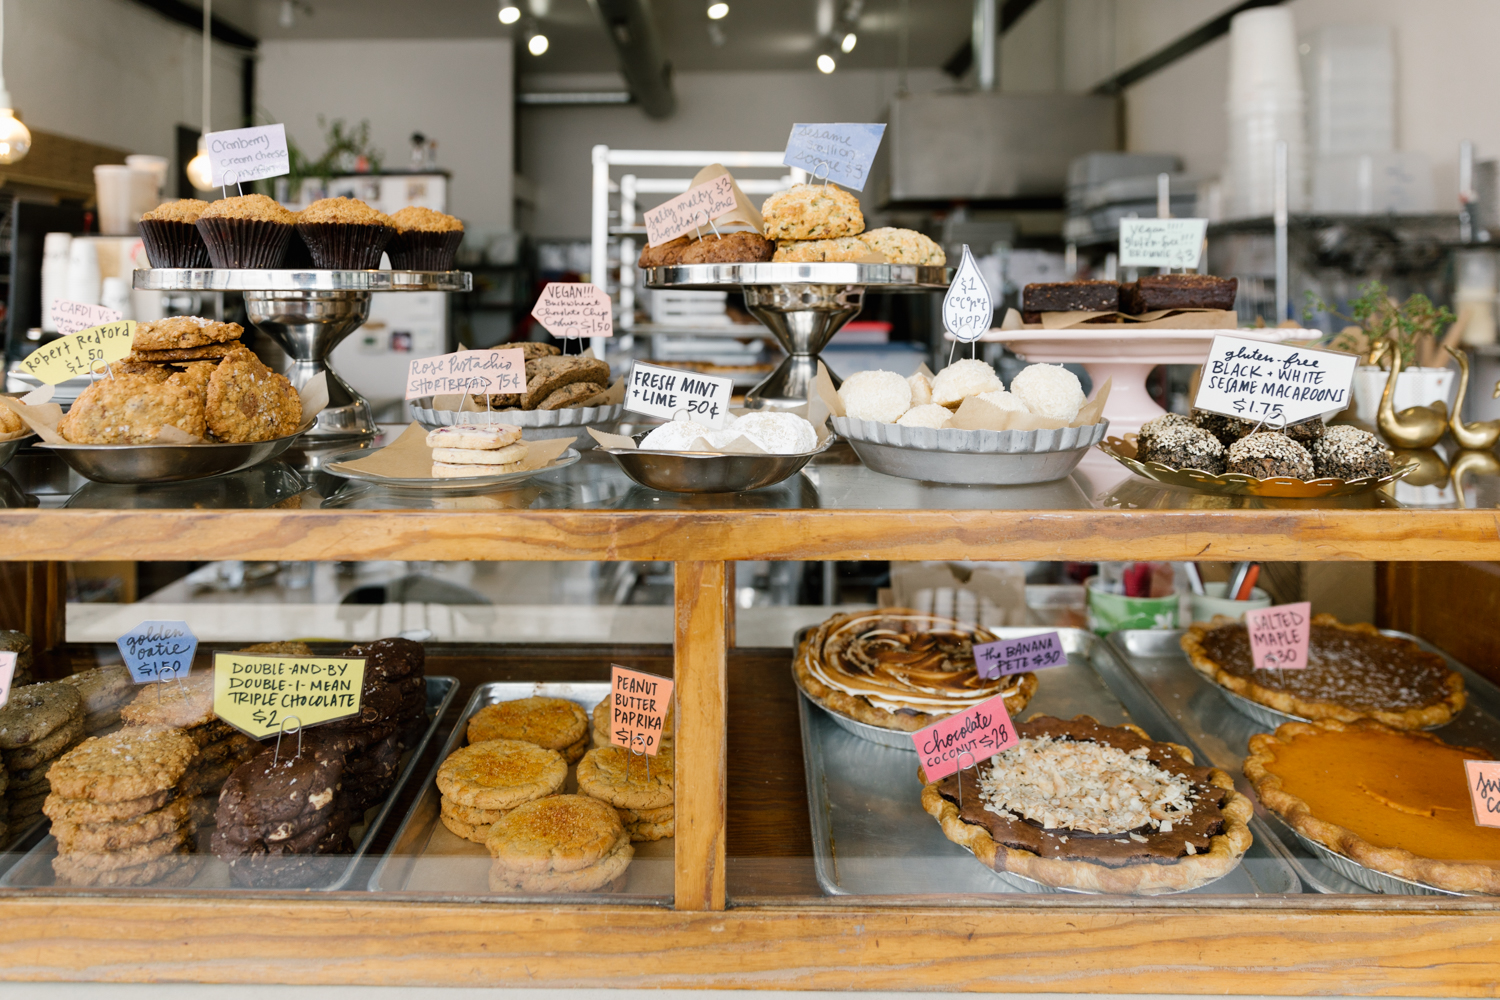 Sister Pie is a quaint bakeshop emphasizing creative, sweet and savory pies made with local, seasonal ingredients.